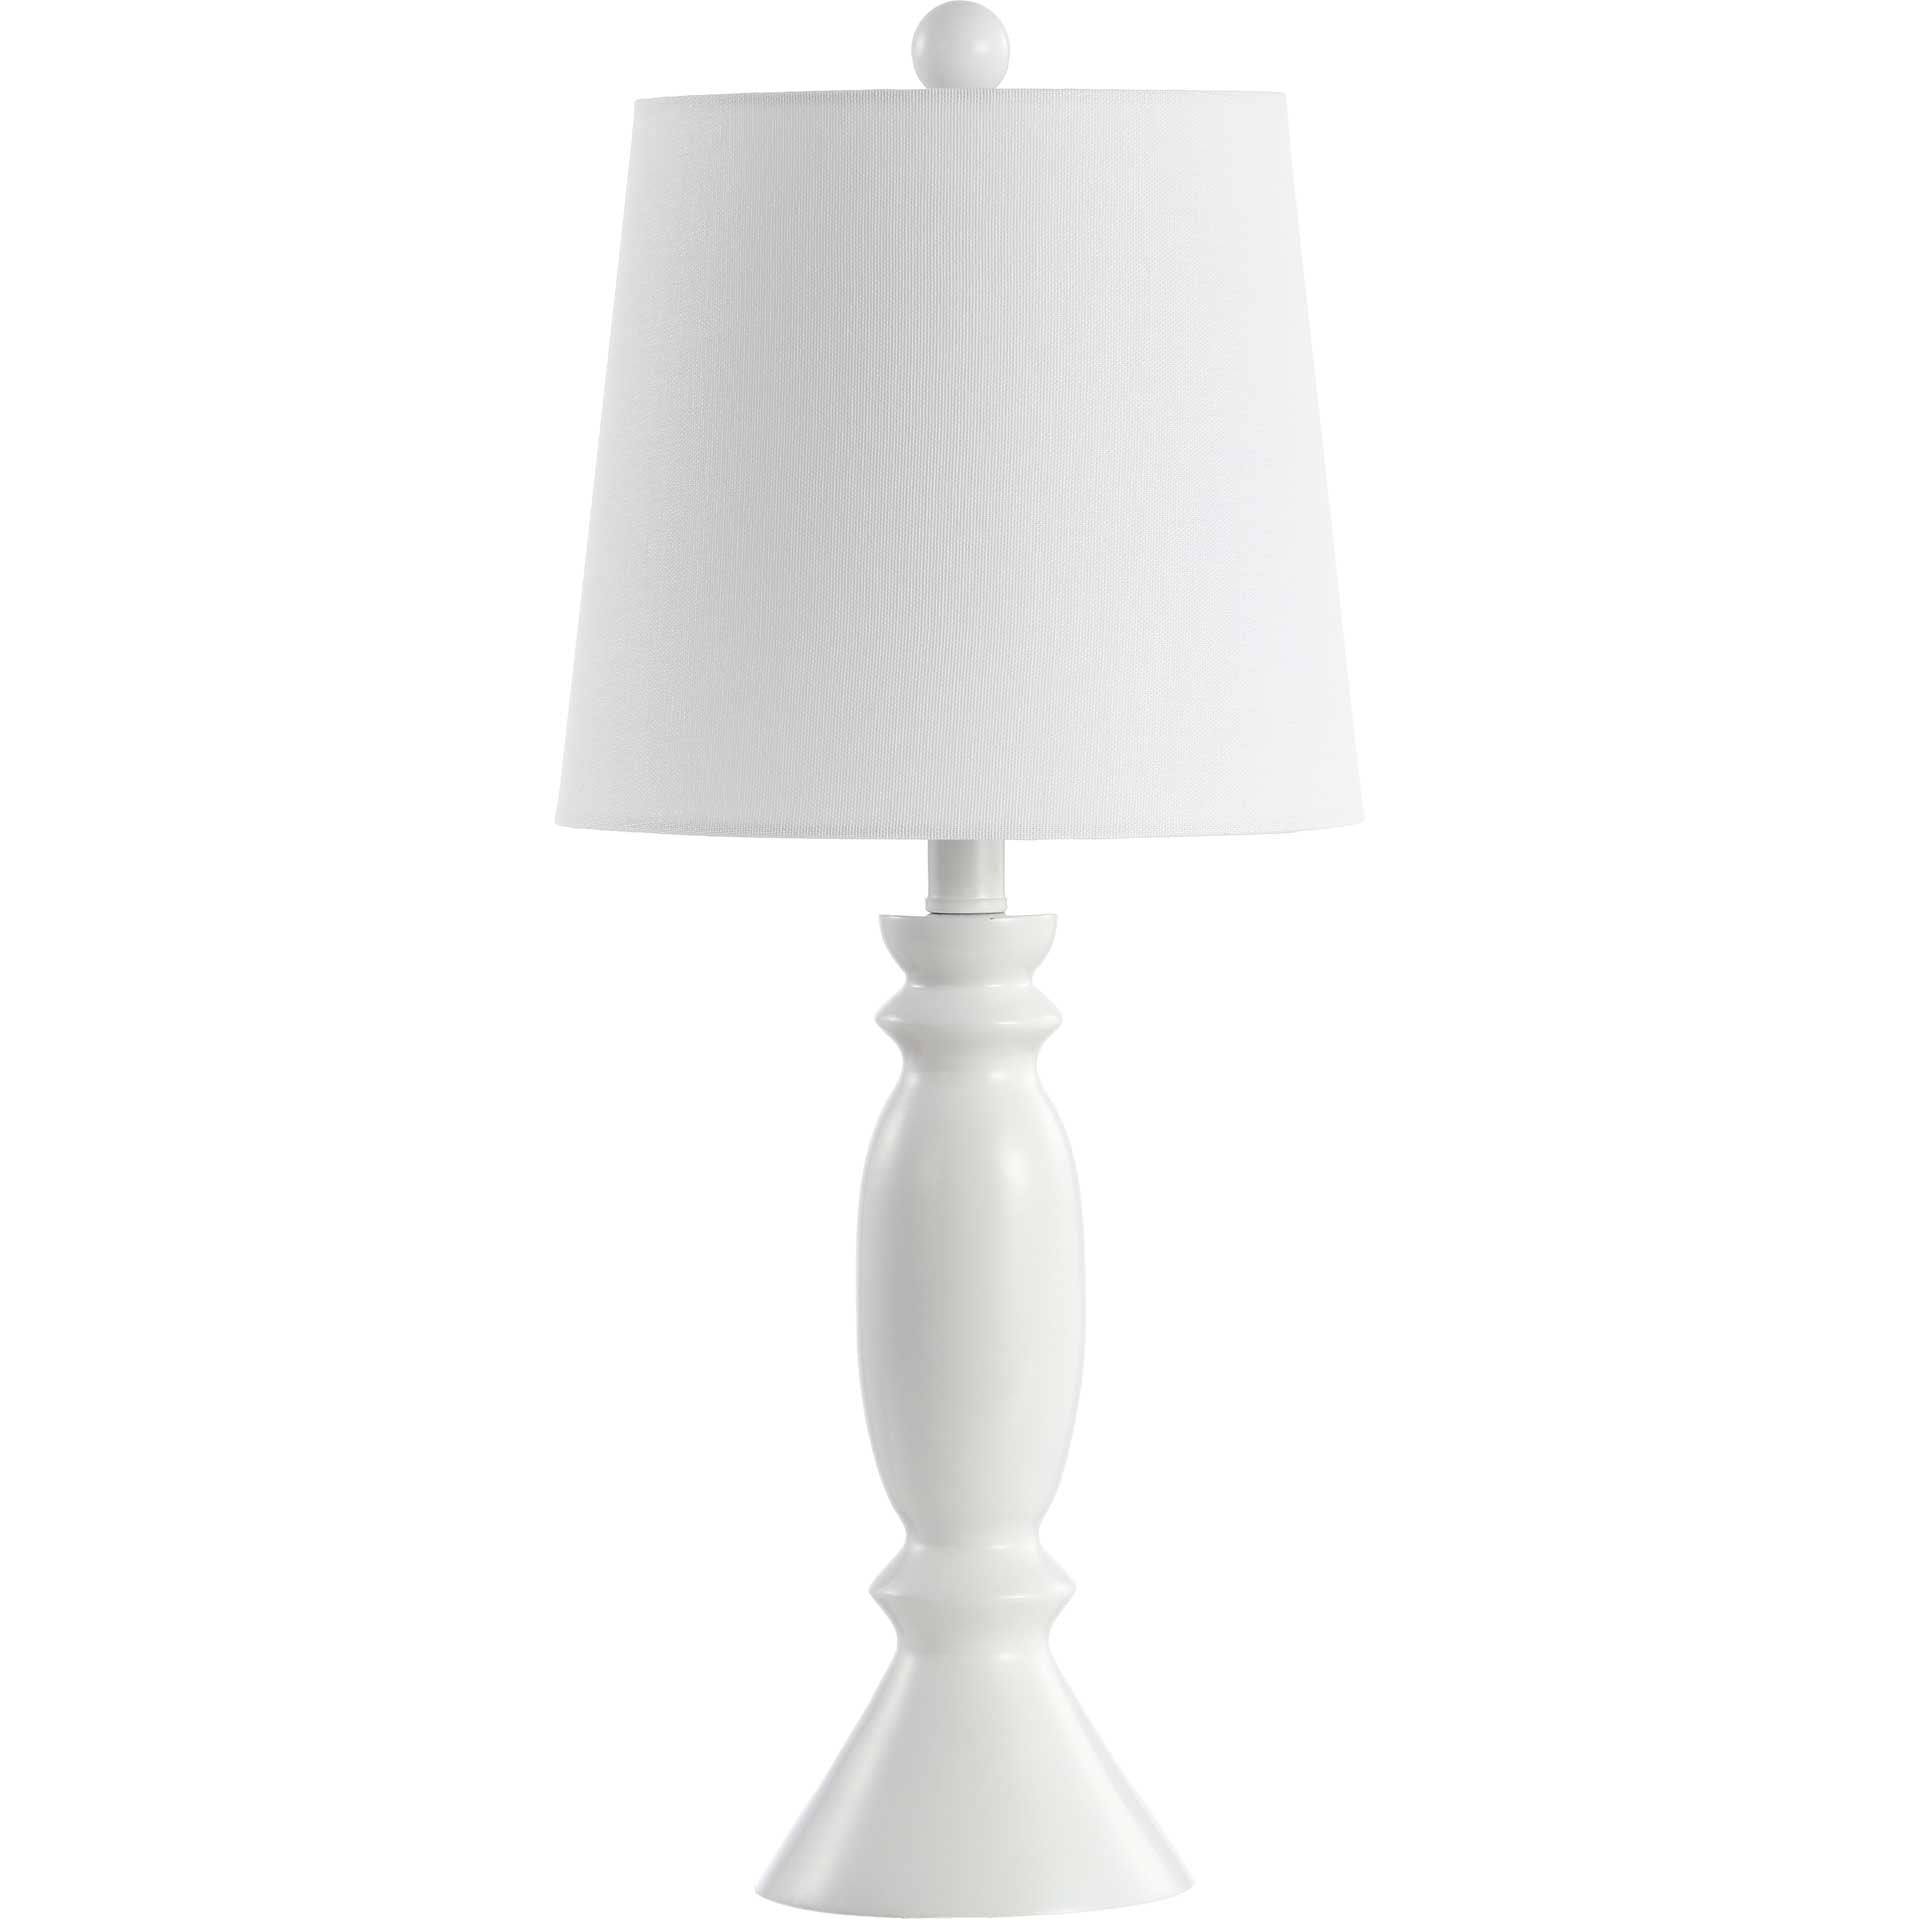 King Table Lamp White